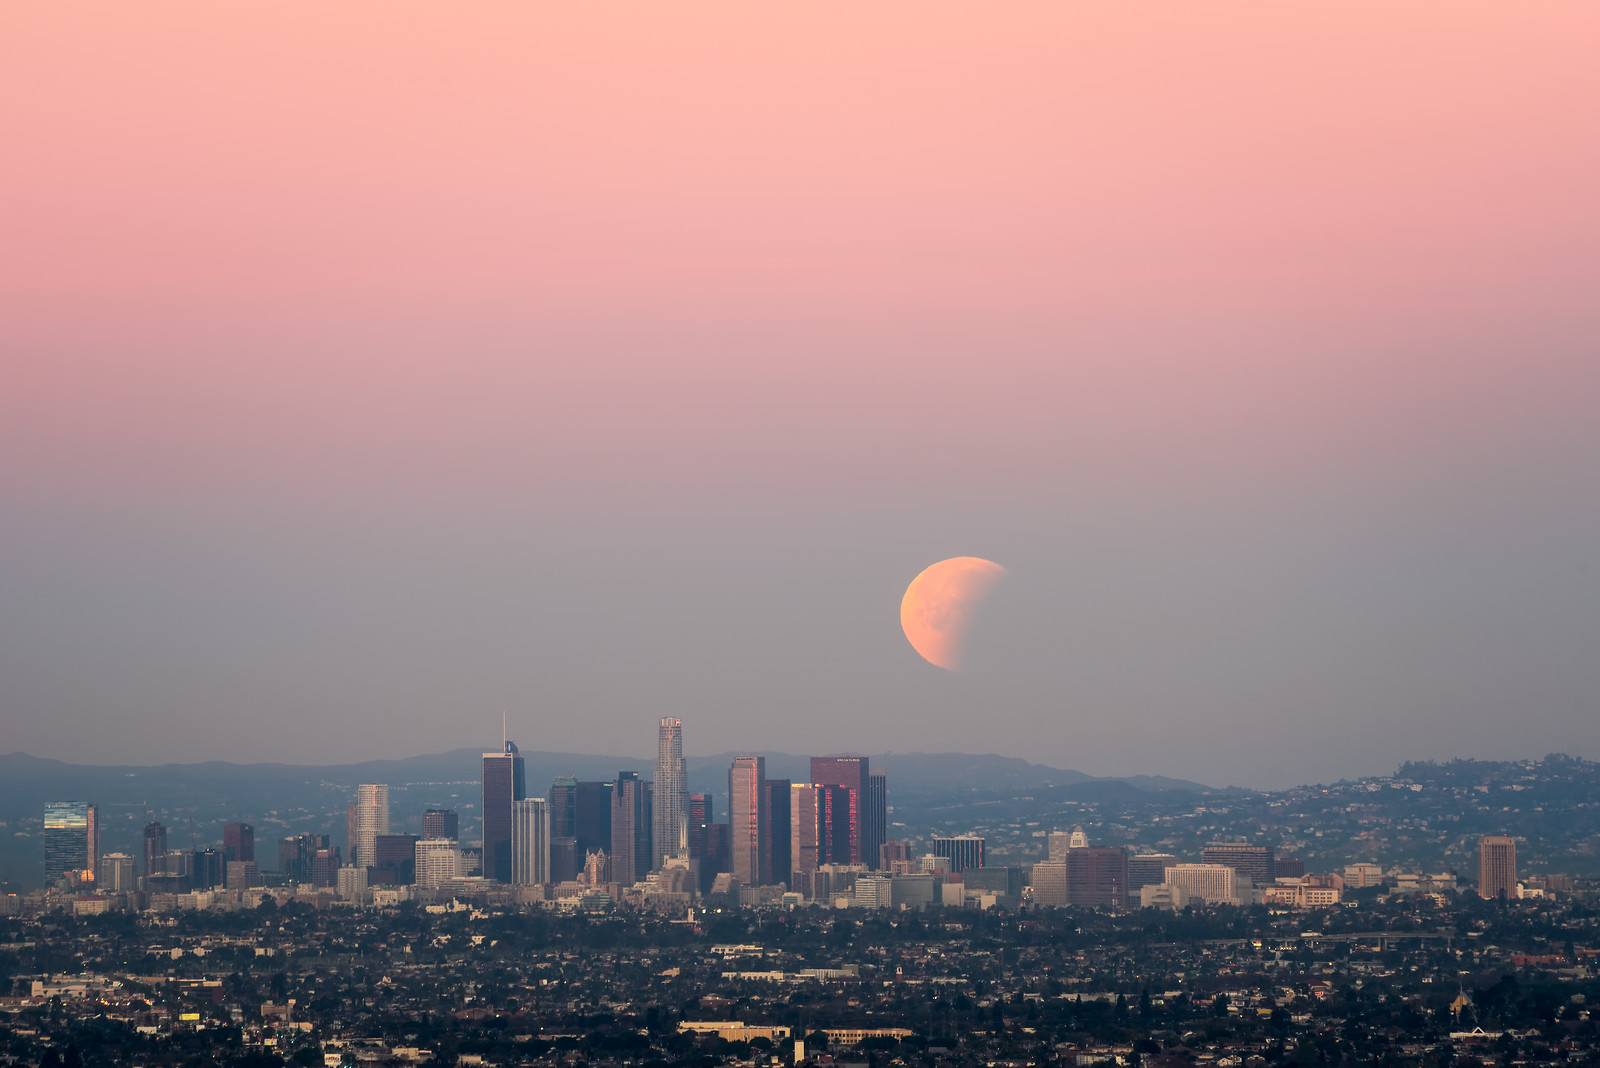 Partial Lunar Eclipse with alepnglow over Los Angeles skyline